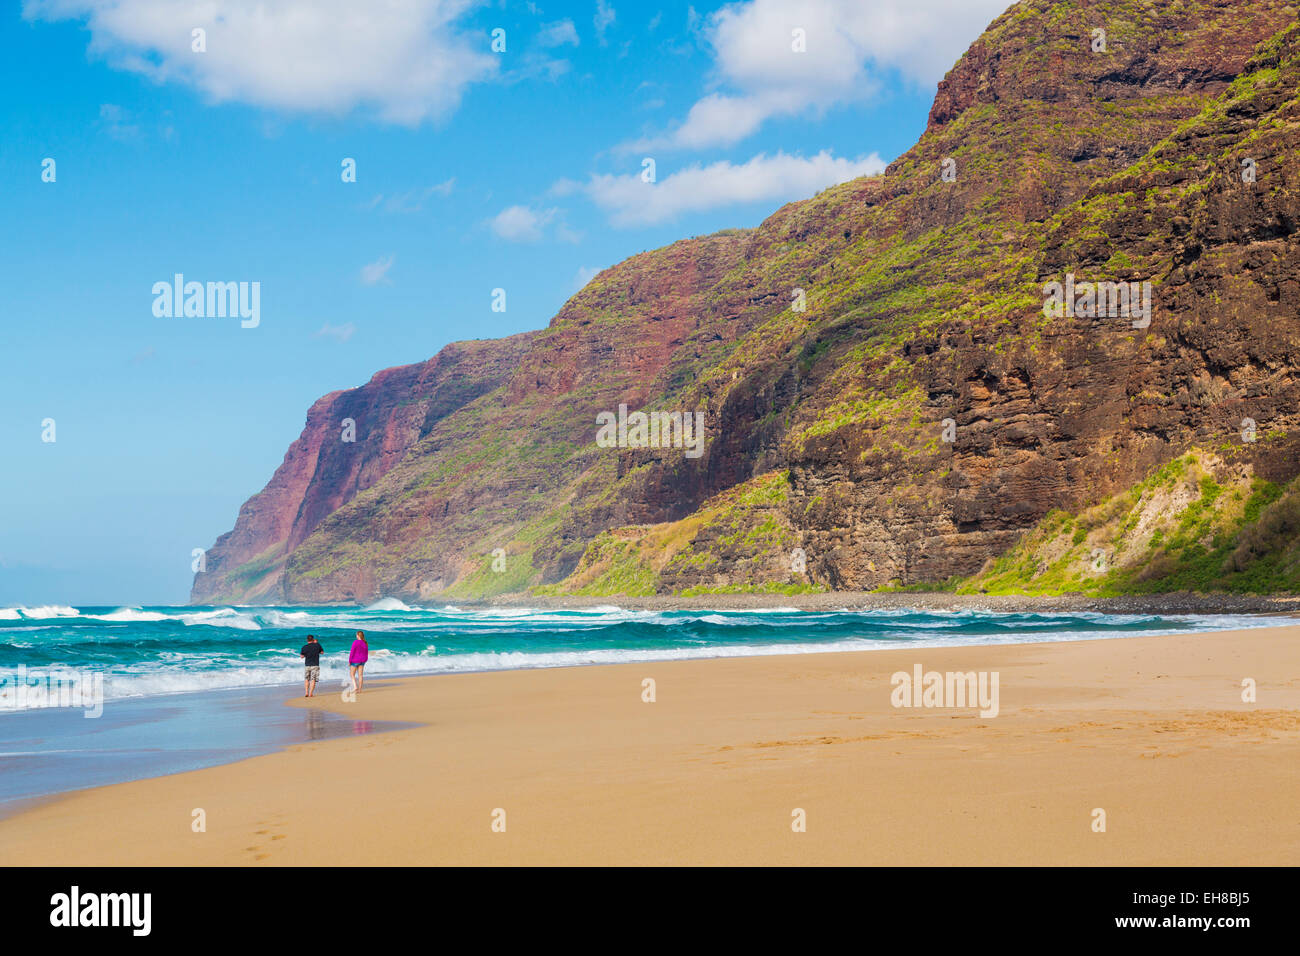 Promeneurs sur le sable en vagues au large de la plage de Polihale à Kauai, Hawaii Photo Stock